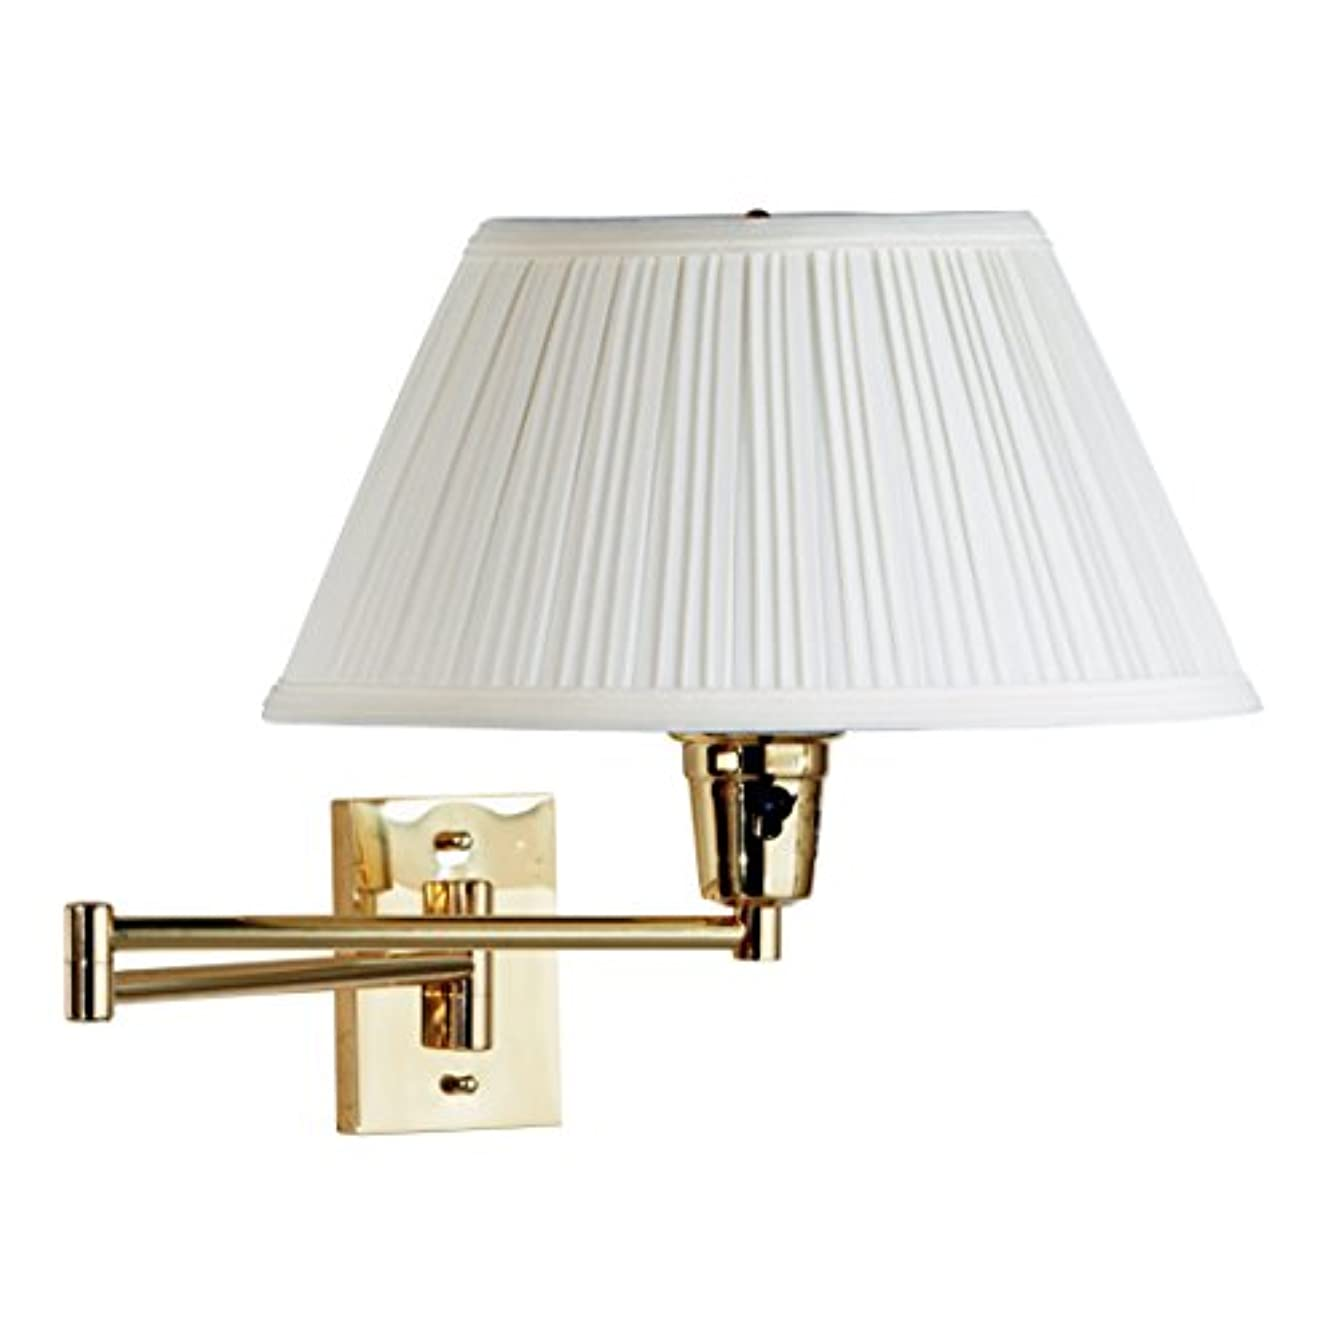 Functional and Stylish, Varallo Wall Swing Arm Lamp, Brass Finish f033023950700329